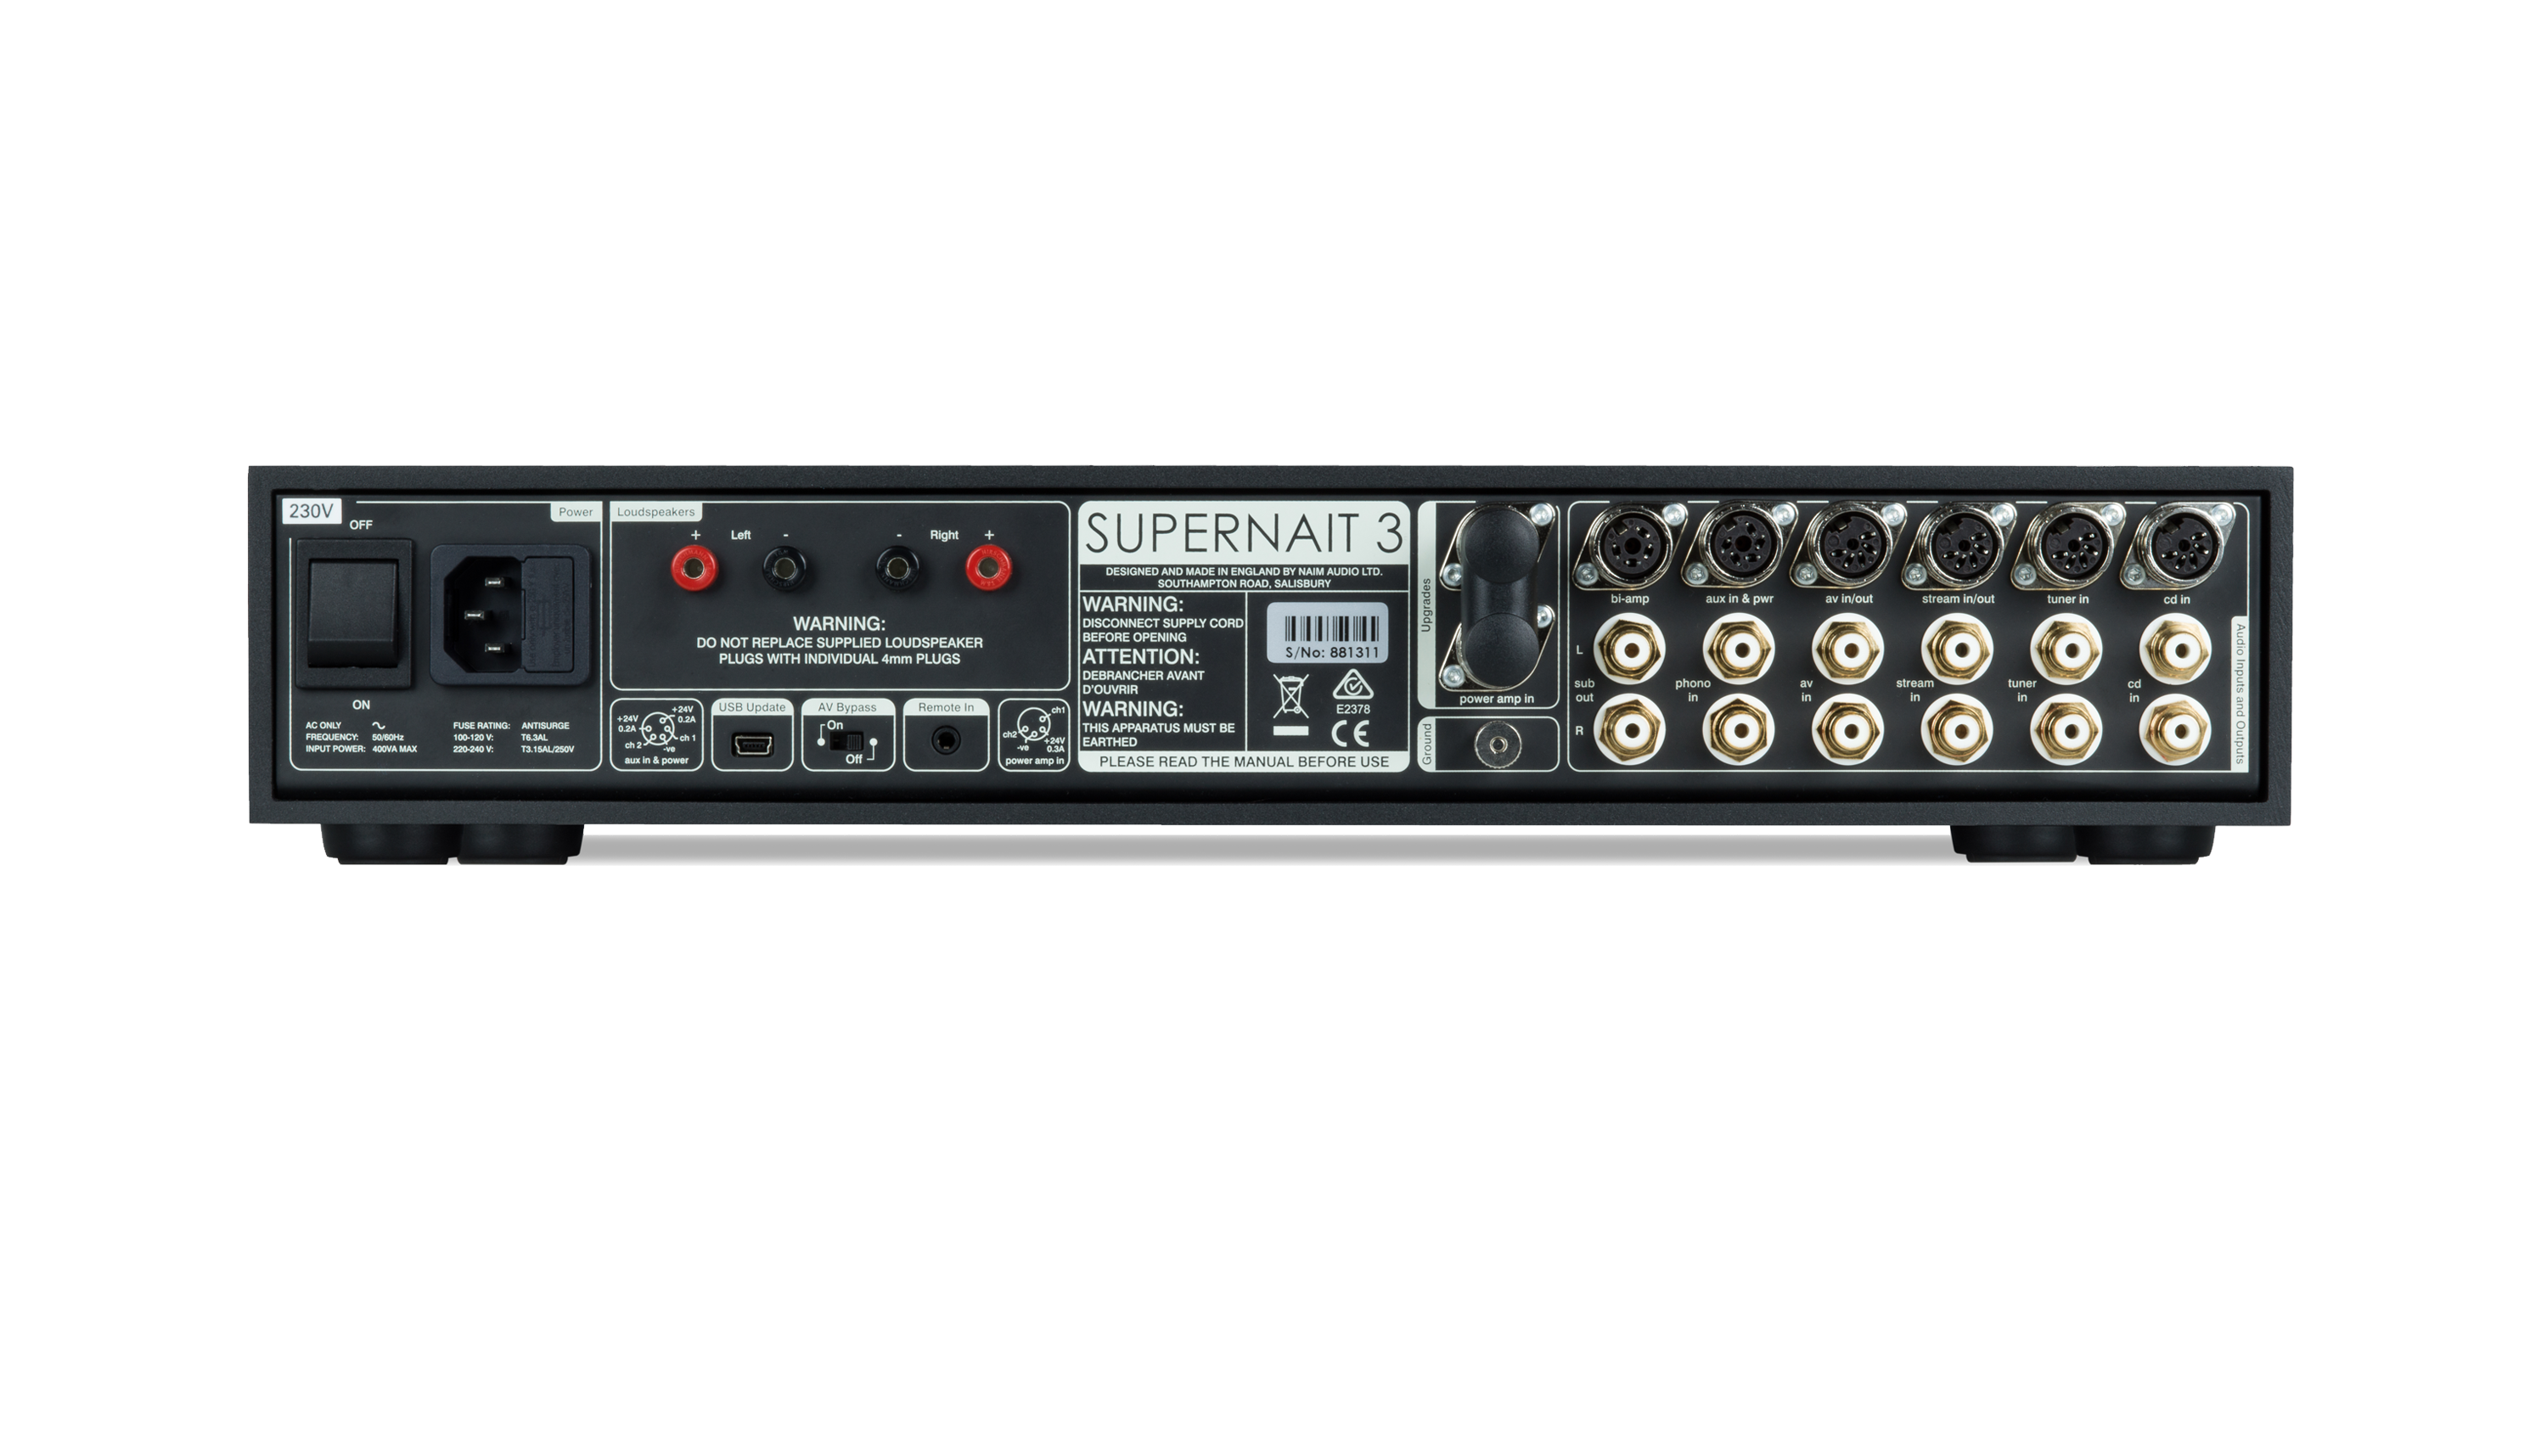 SUPERNAIT 3 Integrated Amplifier